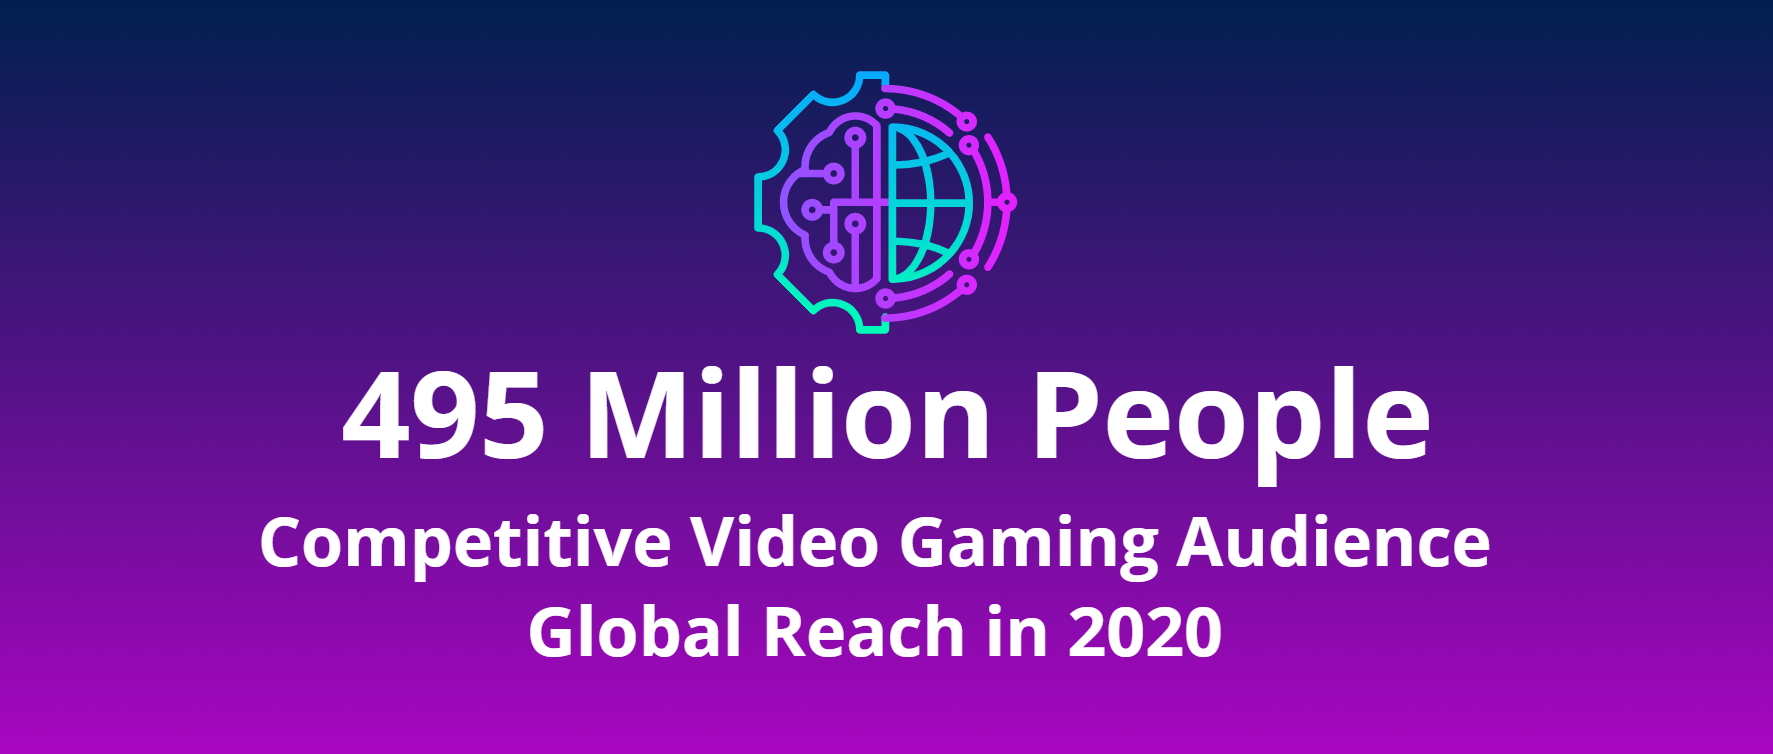 495 Million People: Competitive Video Gaming Audience in 2020